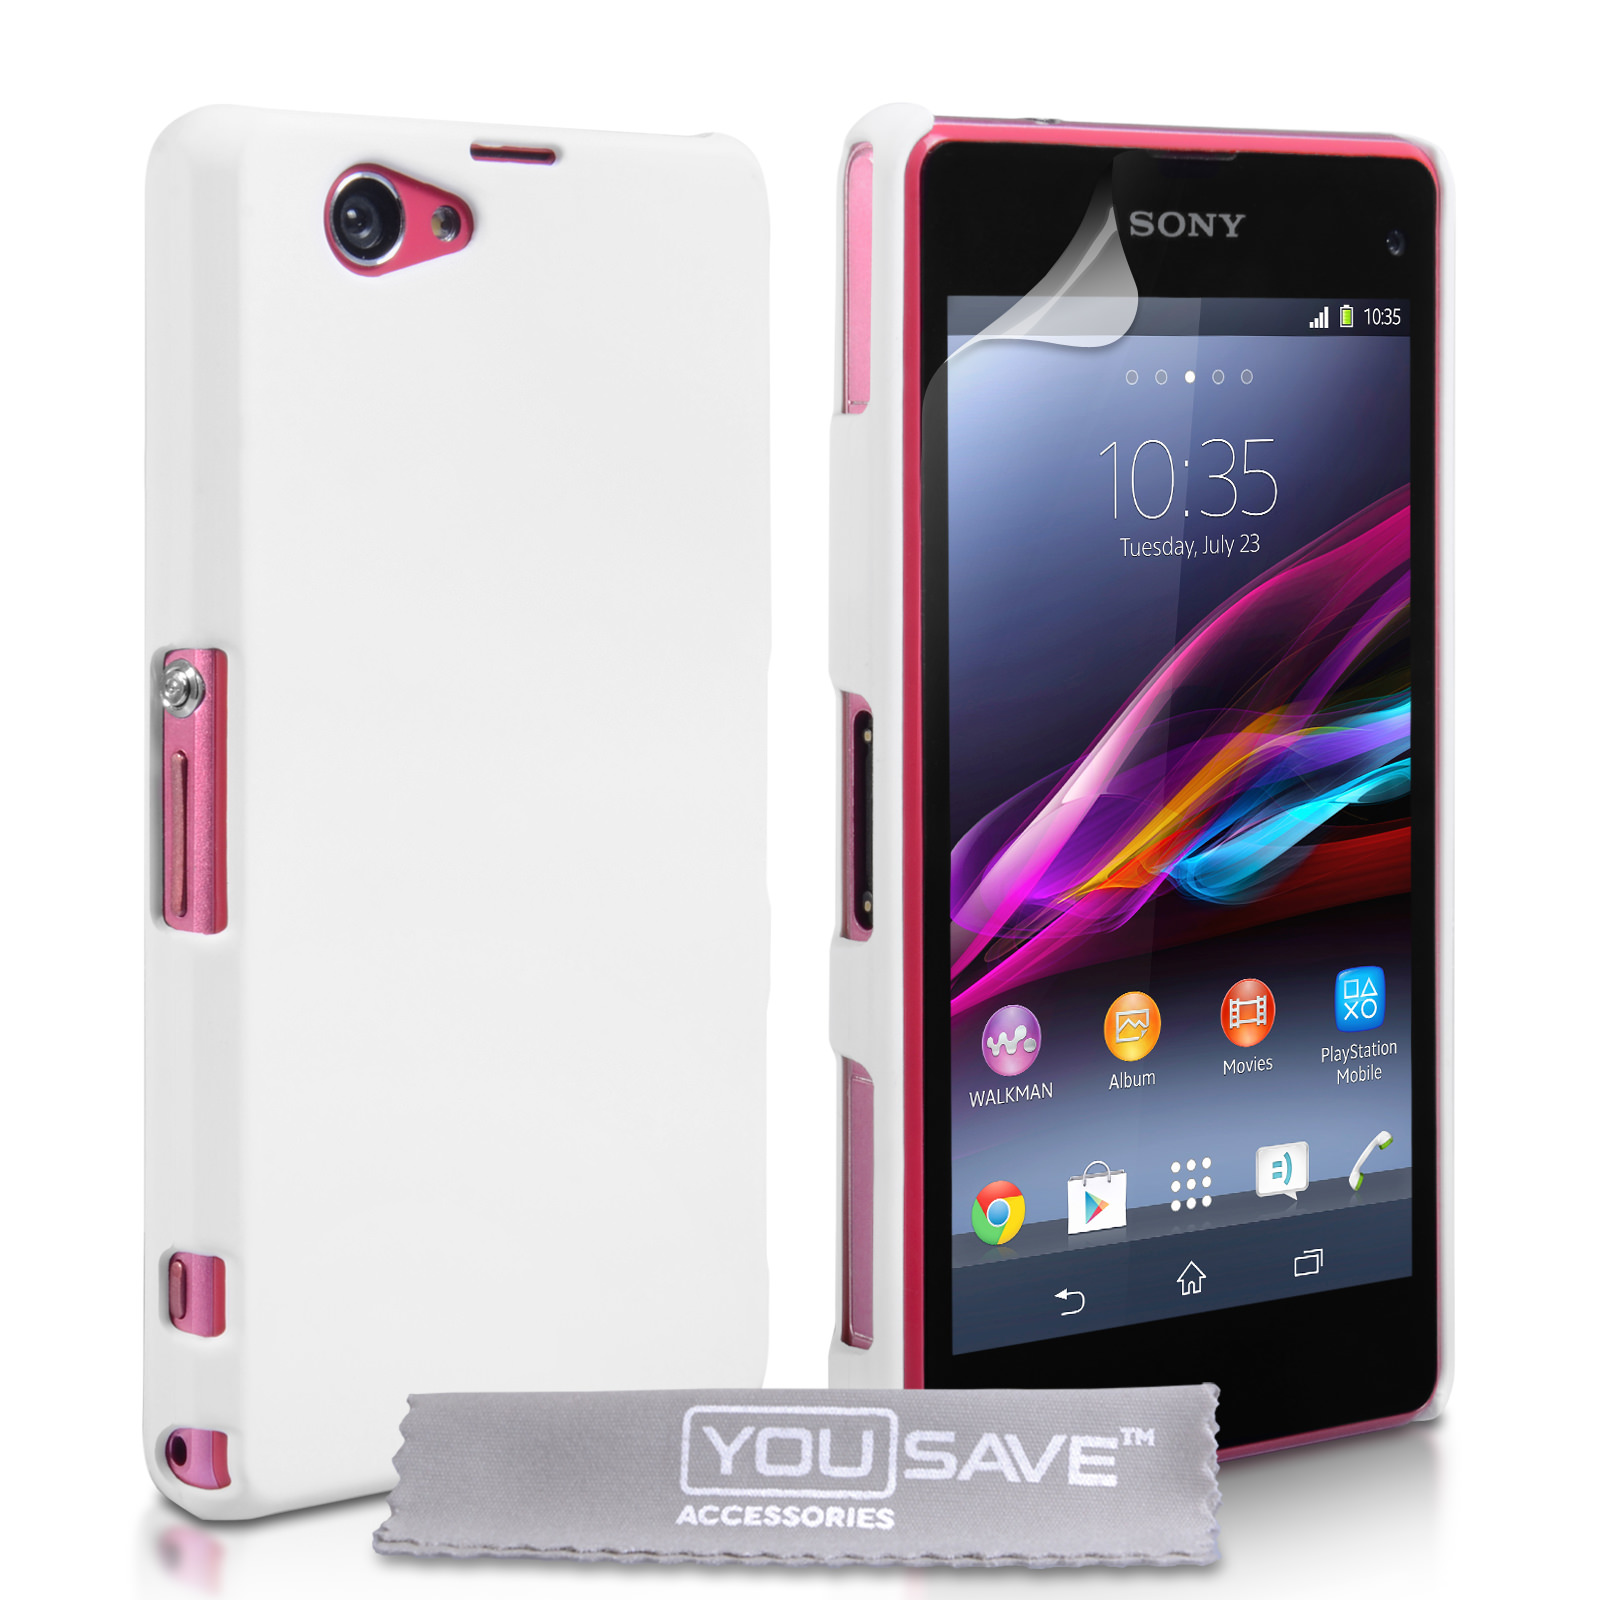 big sale 55326 b2b76 Yousave Accessories Sony Xperia Z1 Compact Hard Hybrid Case - White